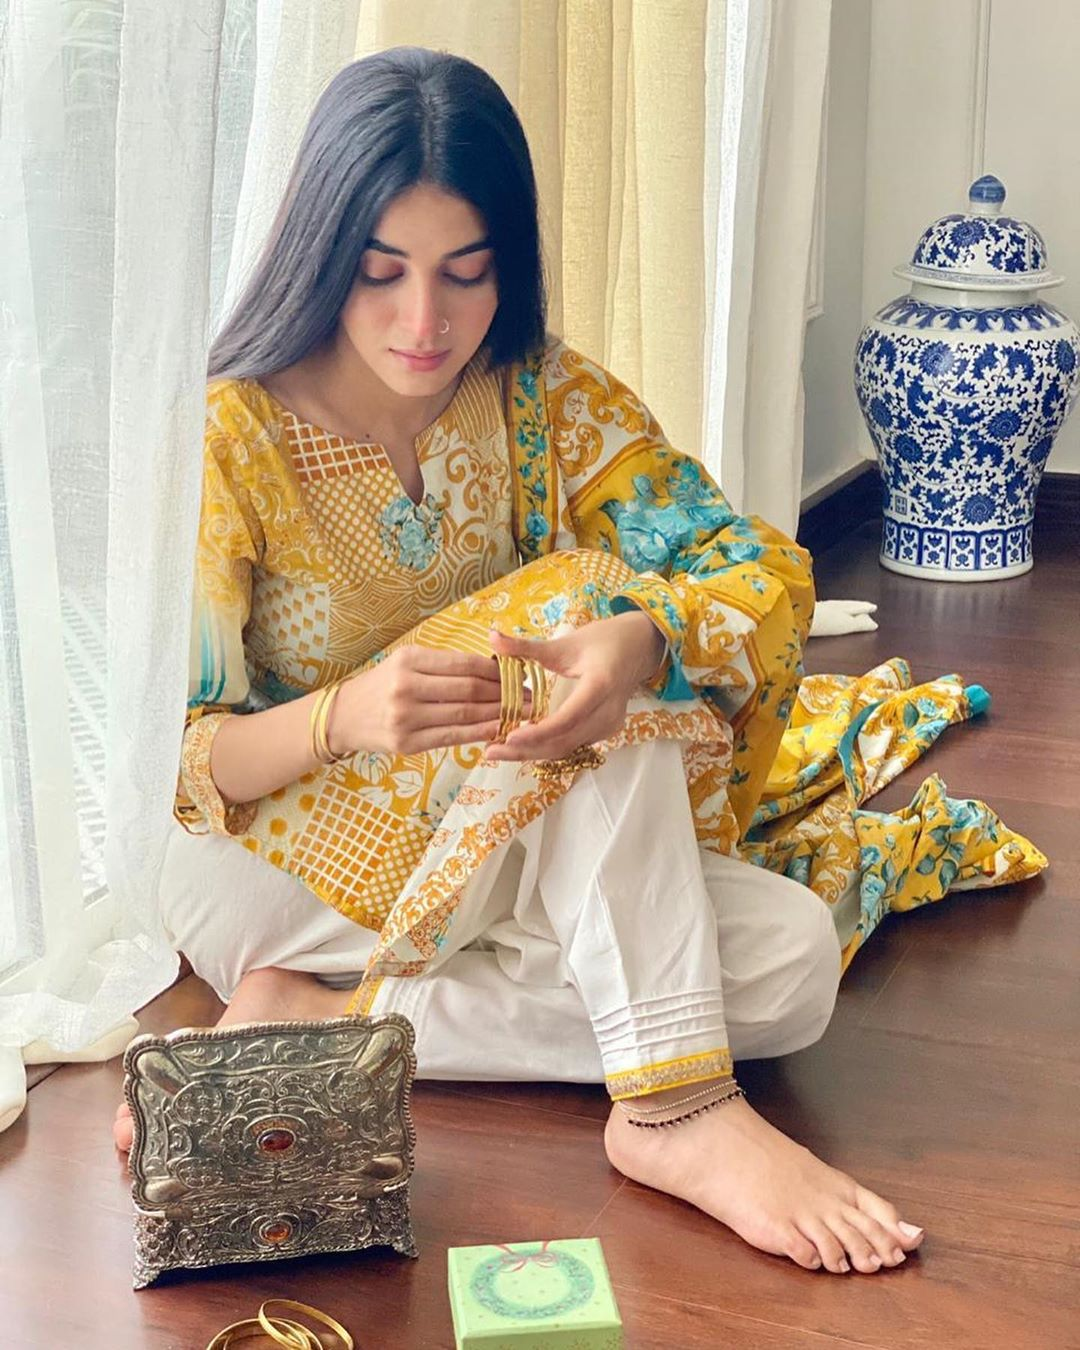 Latest Pictures of Actress Anmol Baloch from her Instagram